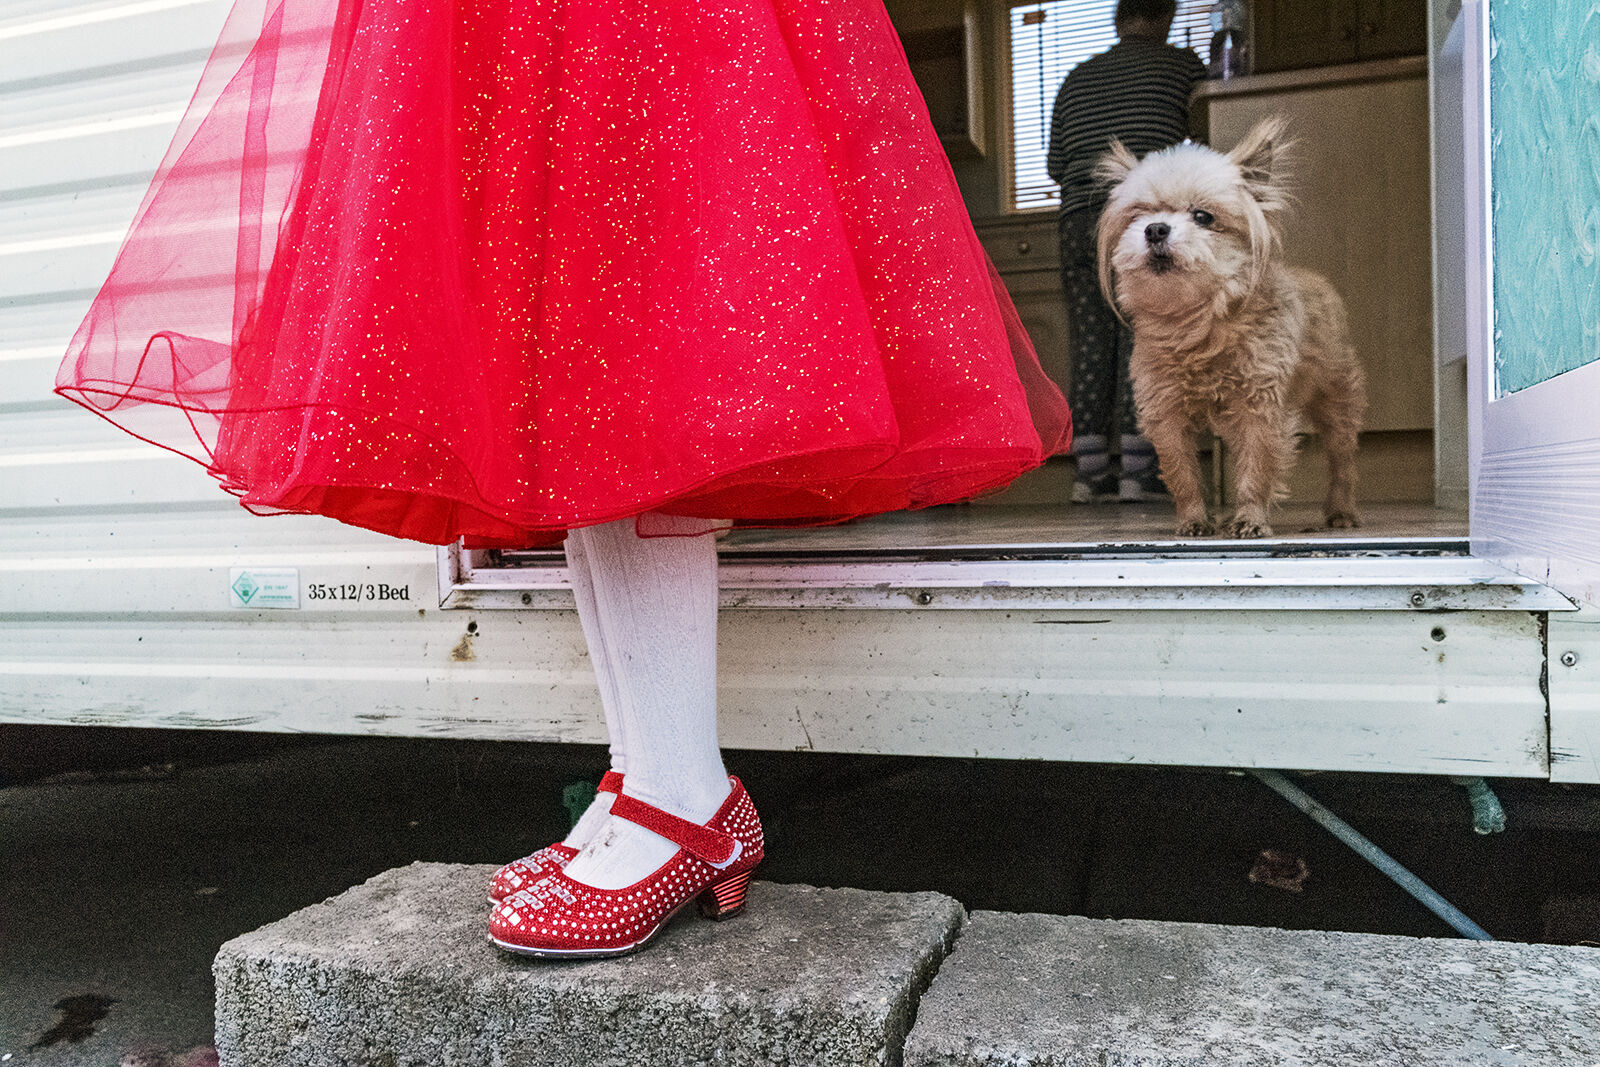 Alesha's Red Dress and Shoes, Tipperary, Ireland 2019